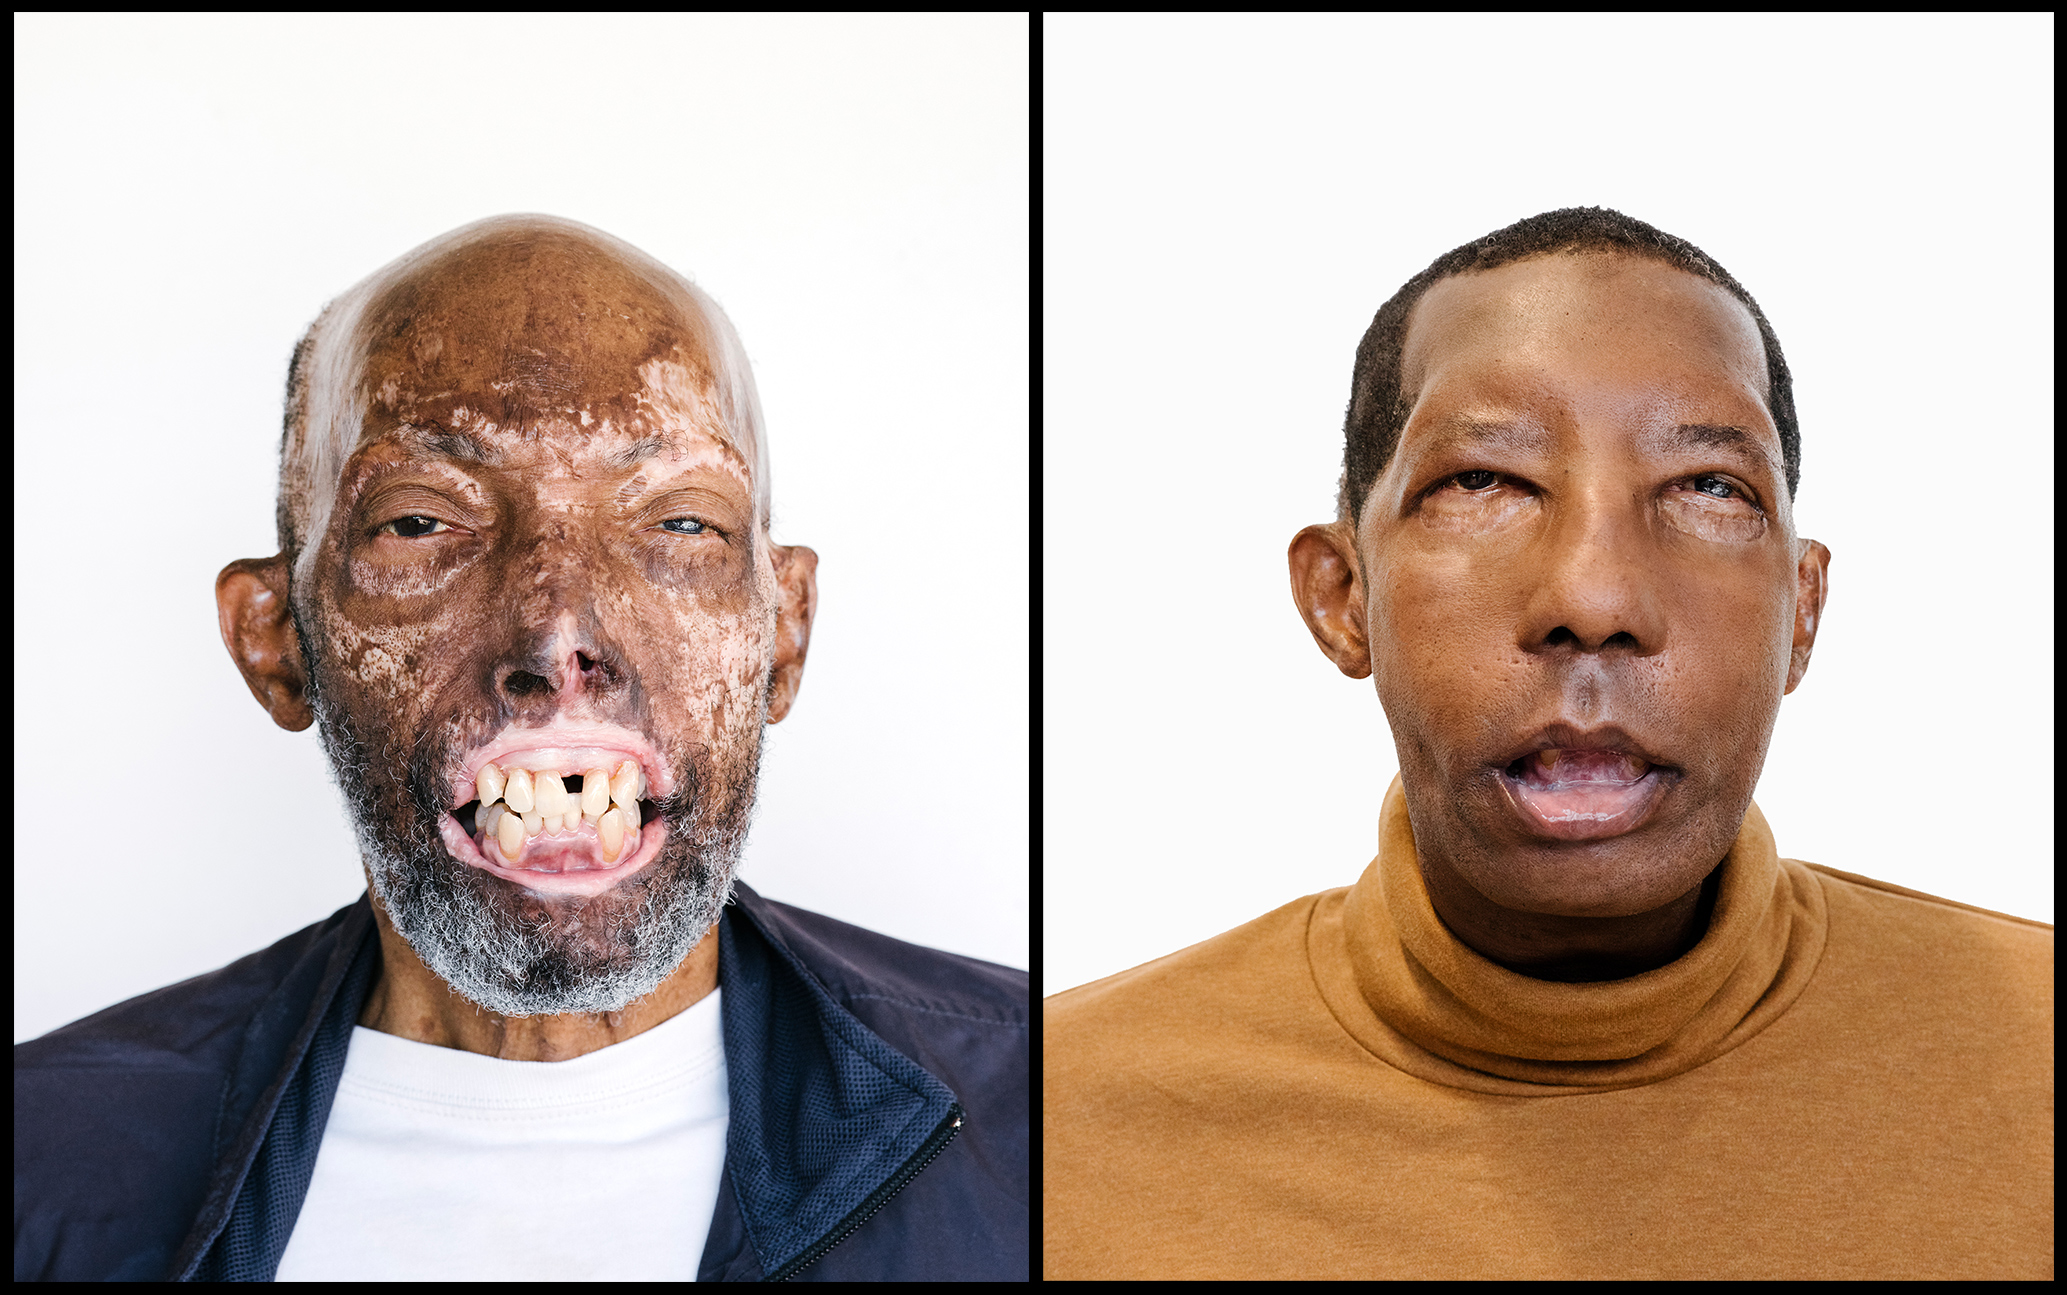 Meet The First African American Face Transplant Recipient